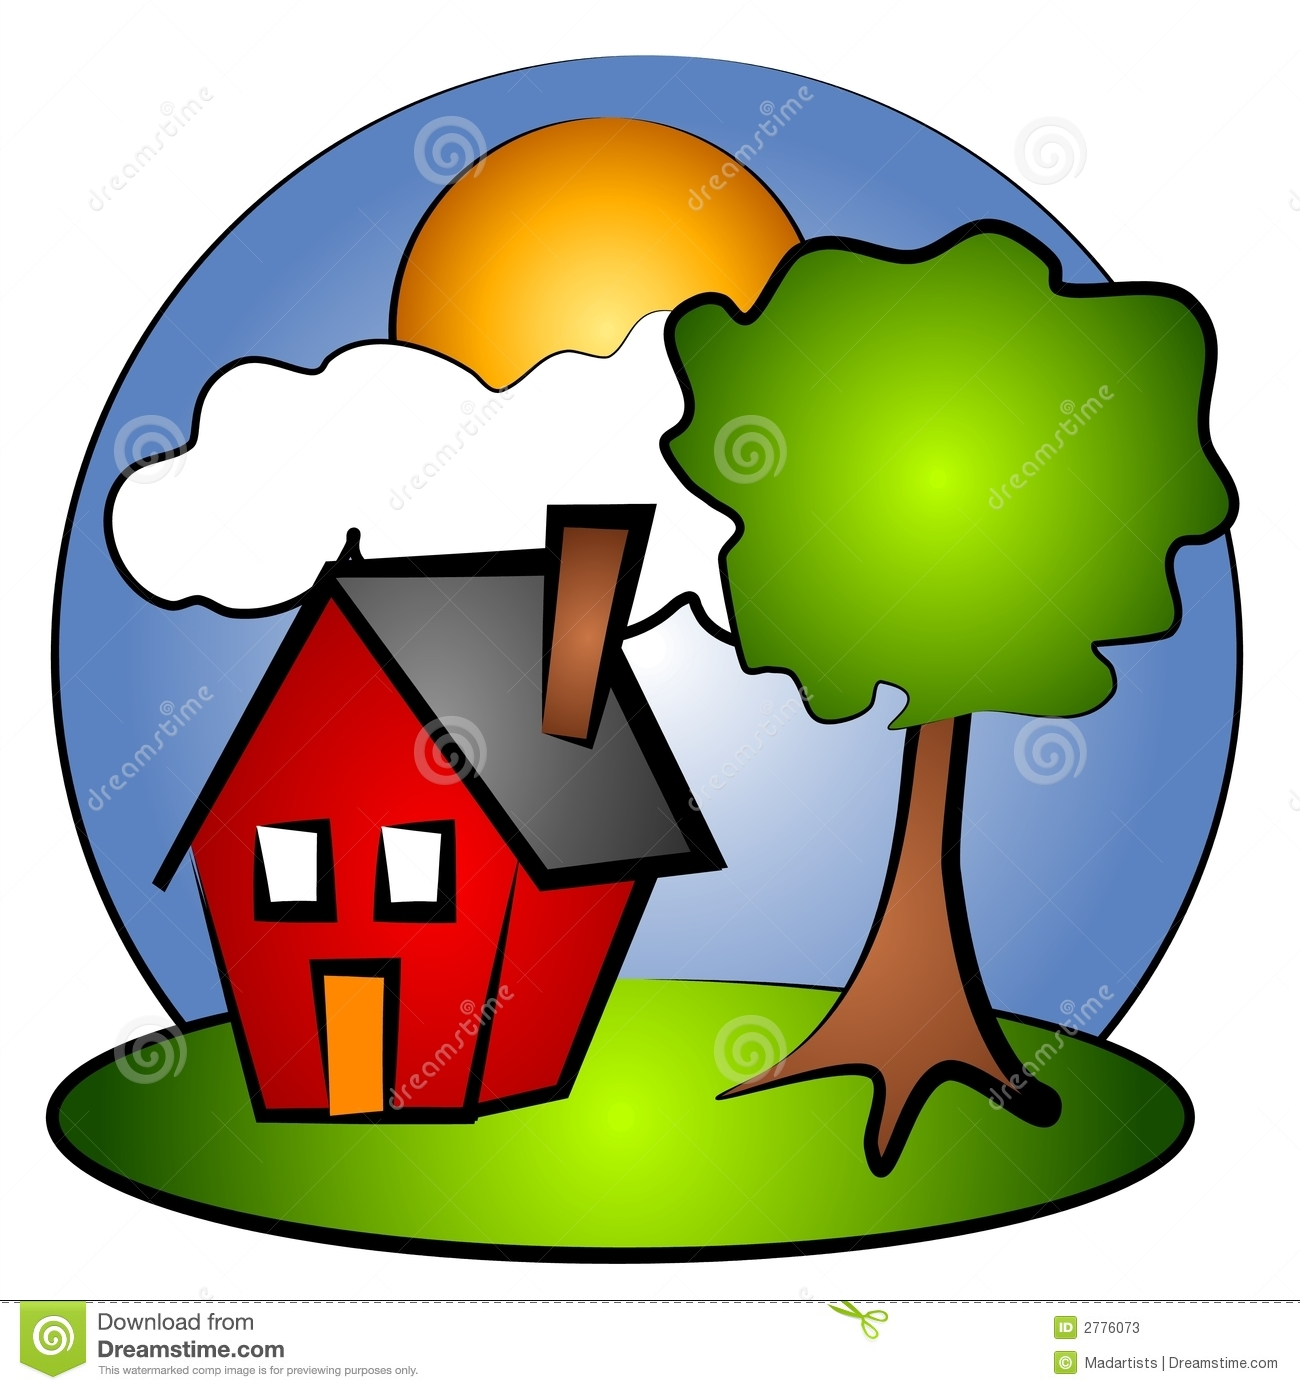 house rural scene clip art 2 stock illustration illustration of rh dreamstime com house clip art free house clip art coloring pages